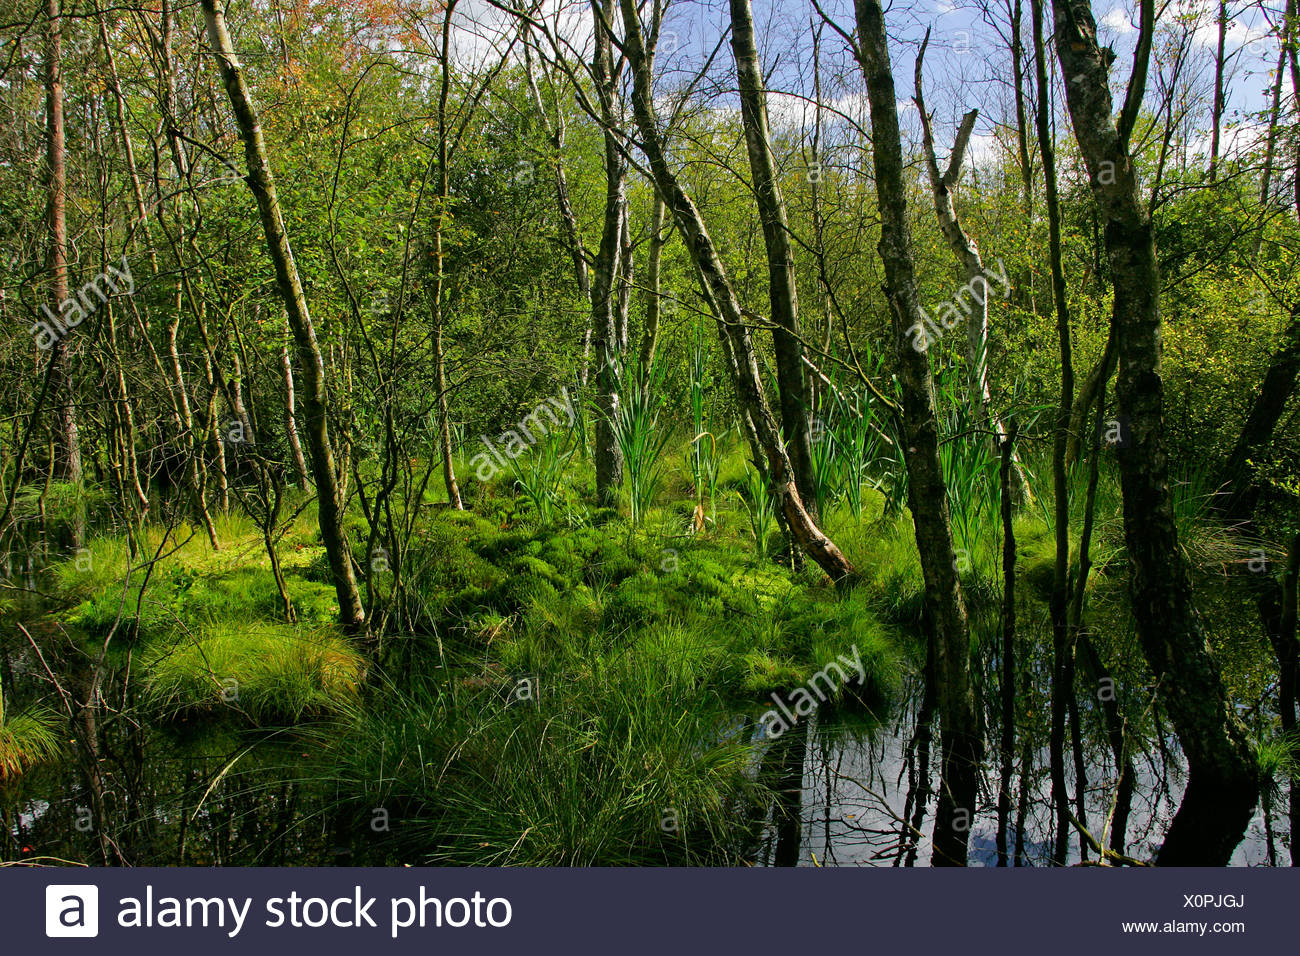 Moor in the Lueneburg Heath - nature reserve Pietzmoor, Schneverdingen, nature reserve Lueneburg Heath, Lower Saxony, Germany,  Stock Photo